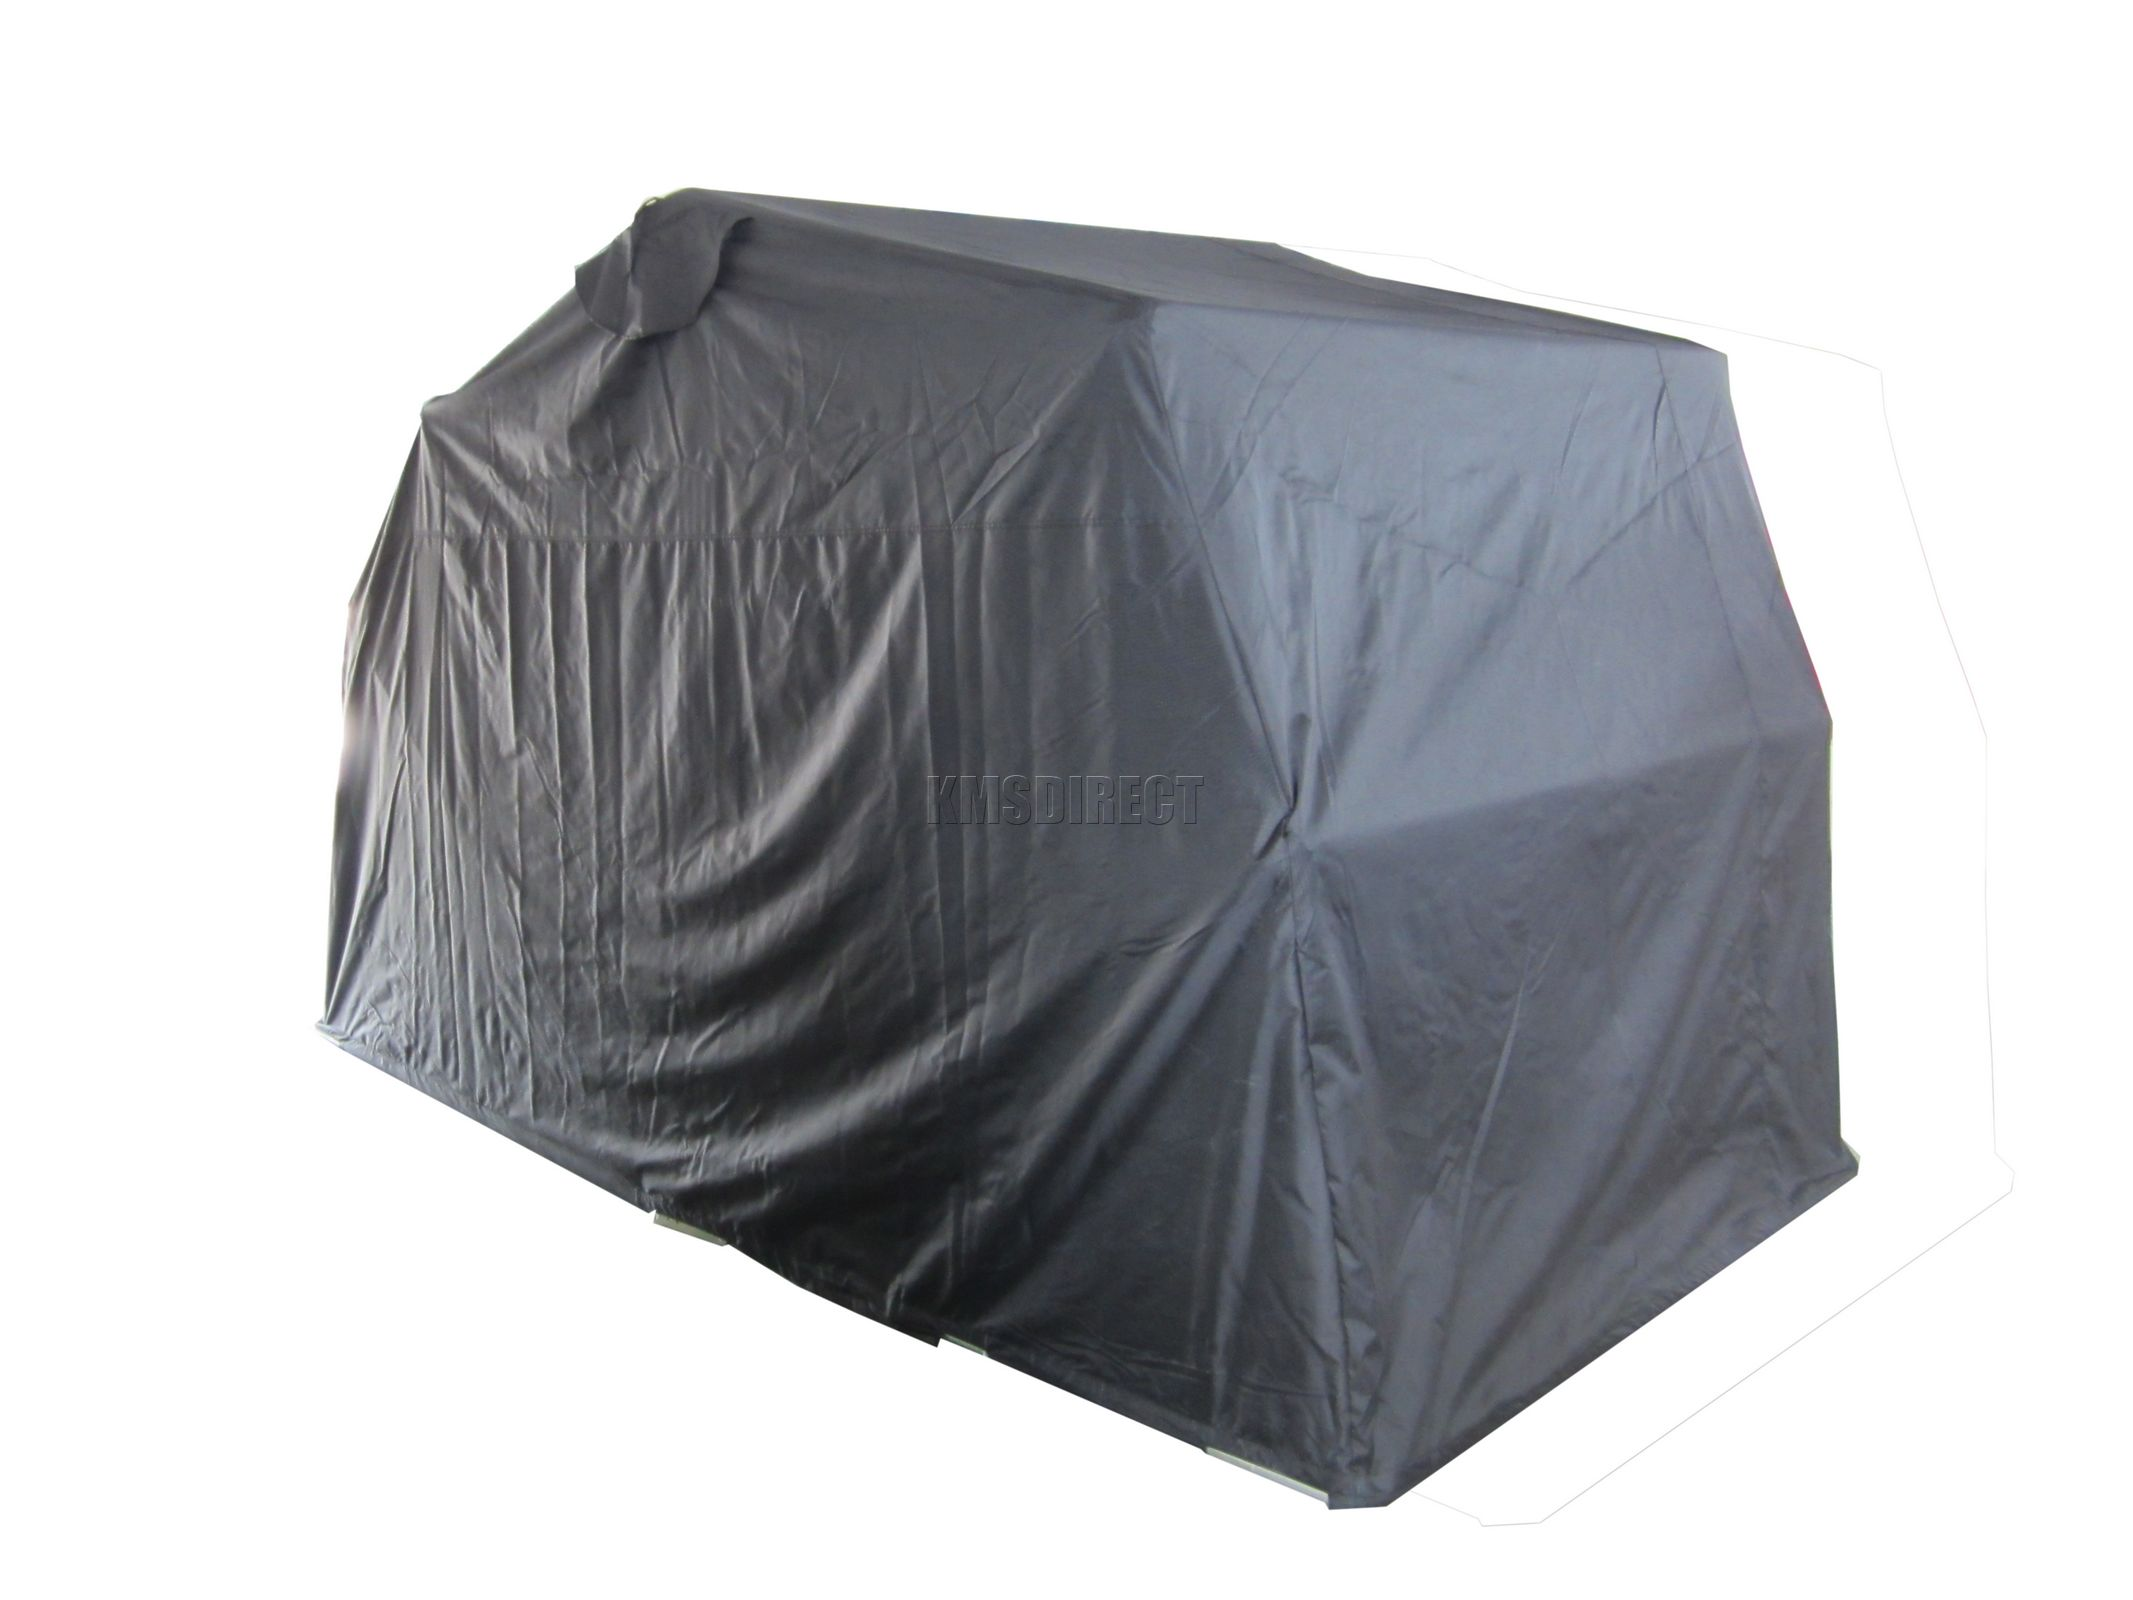 Motorcycle Covers For Outside Storage : Large waterproof motor bike cover storage shed outdoor